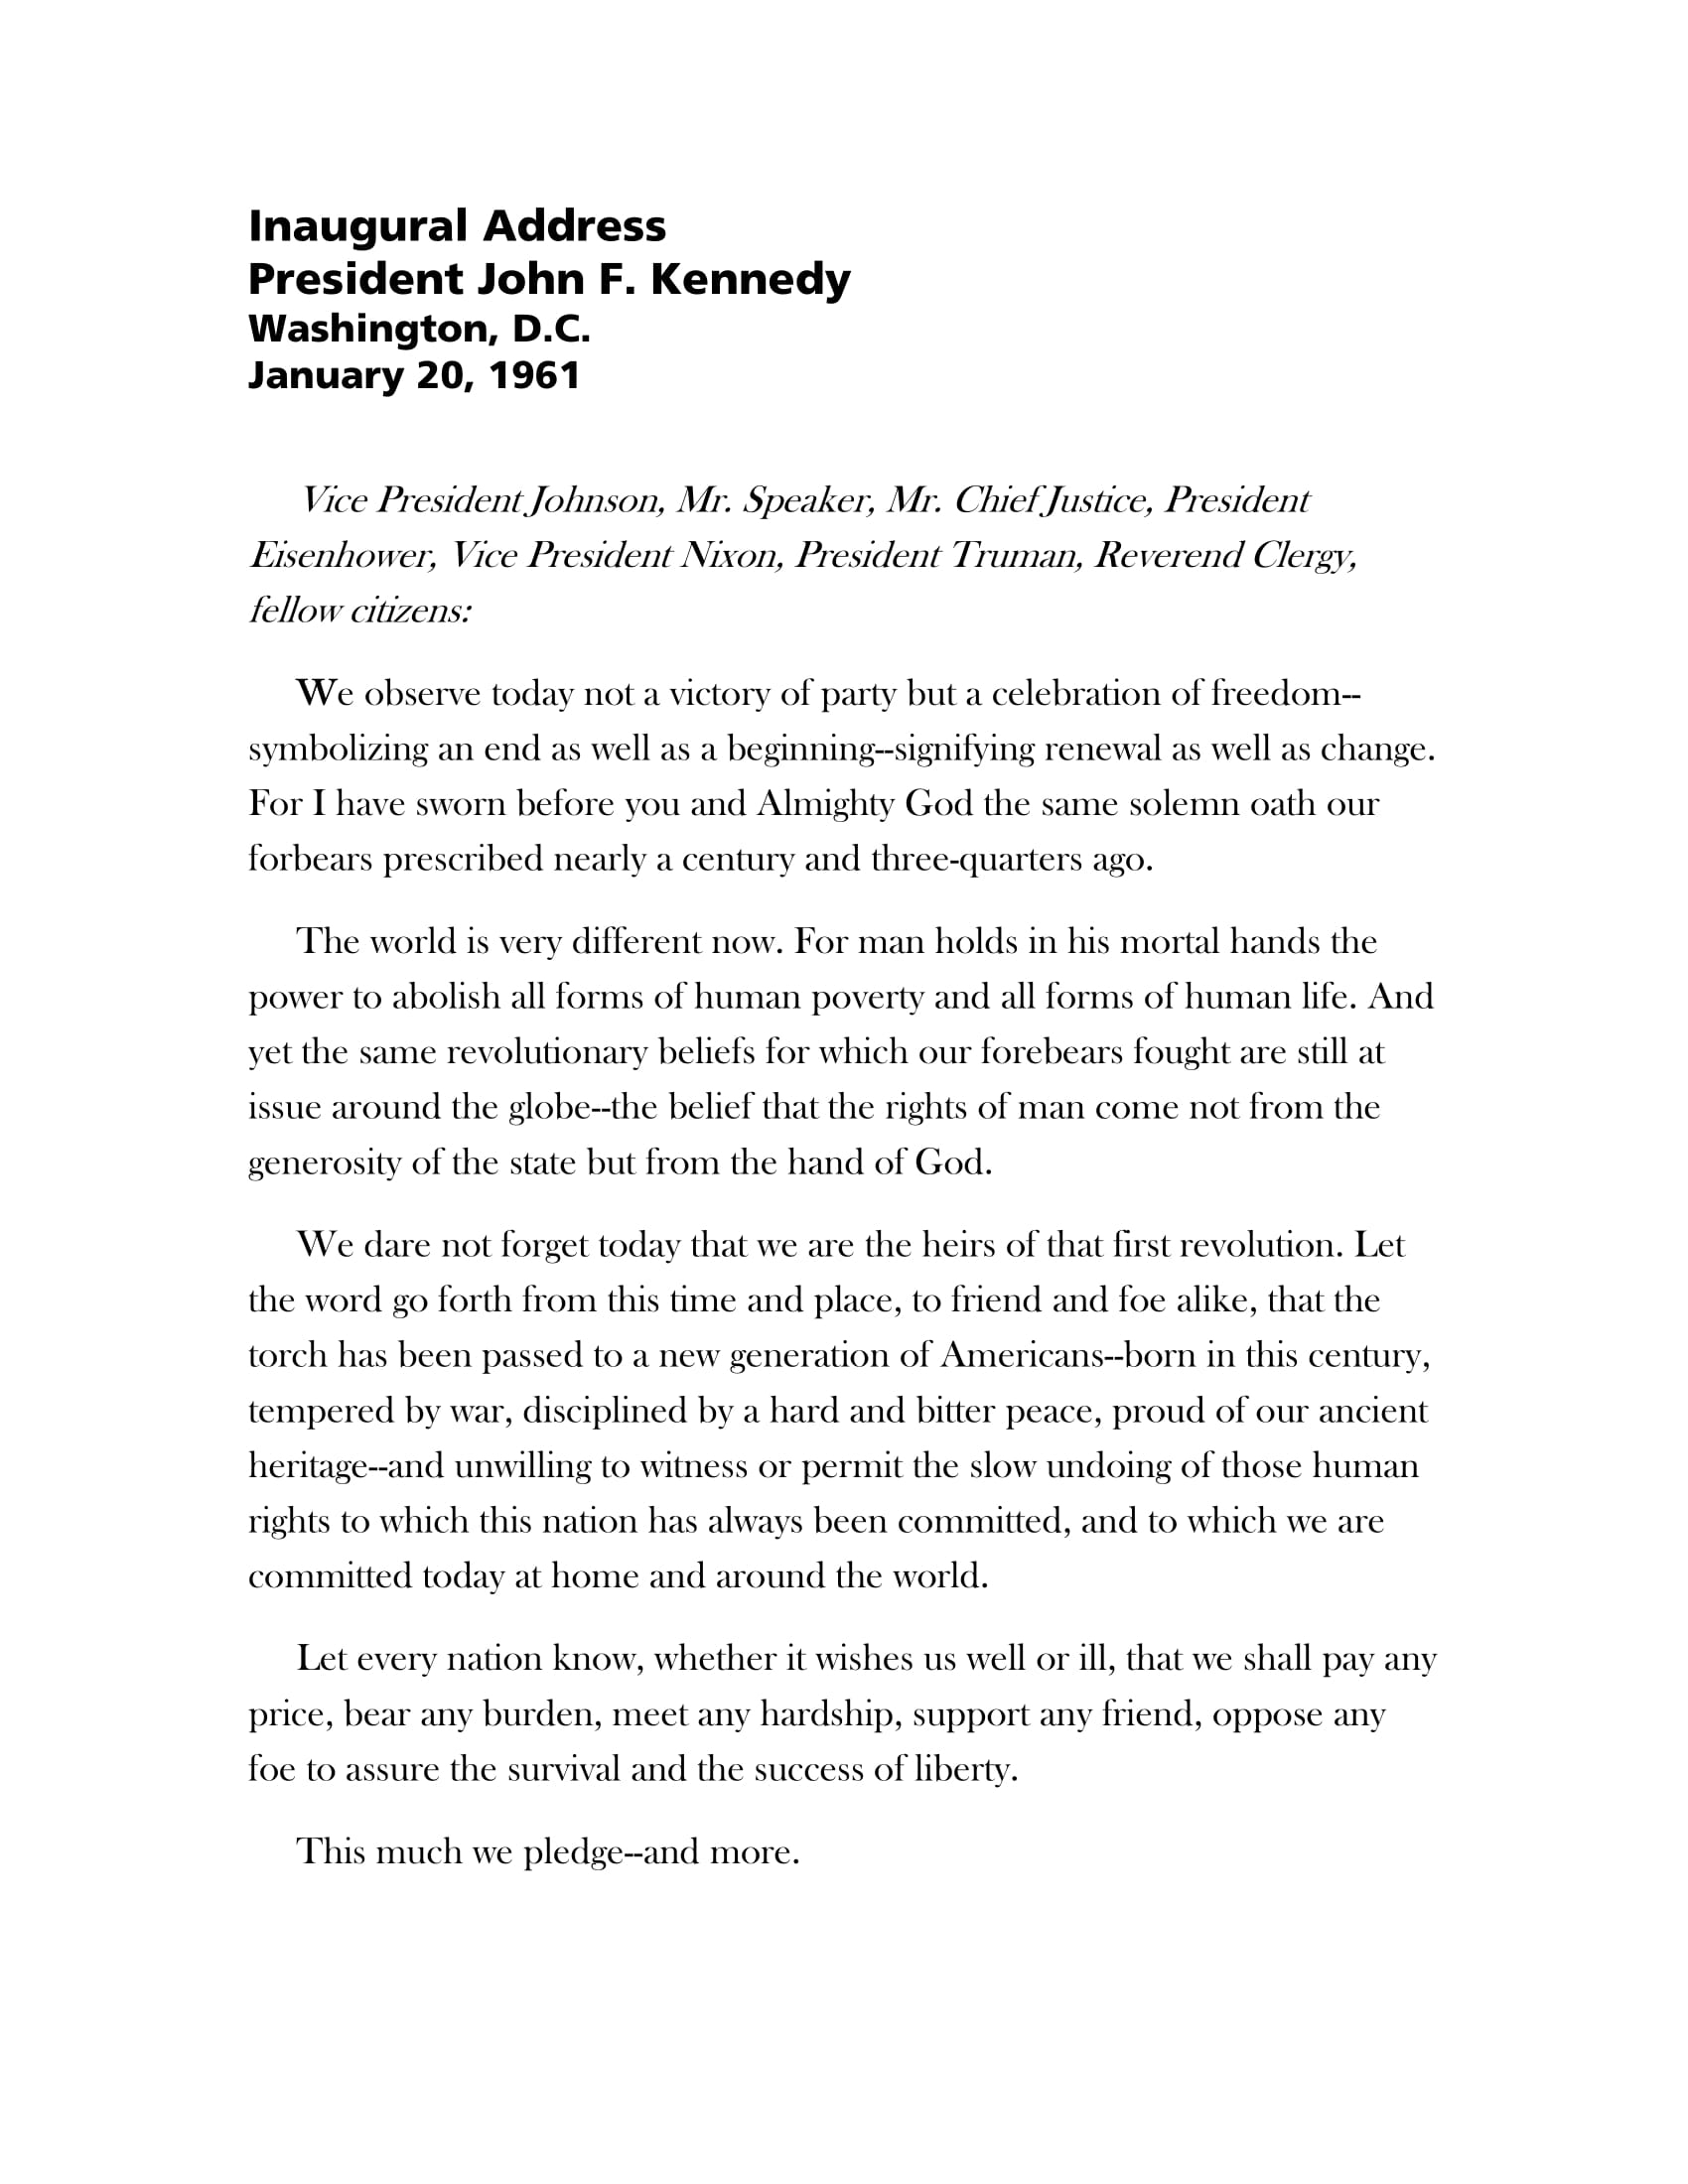 jfk inaugural address example